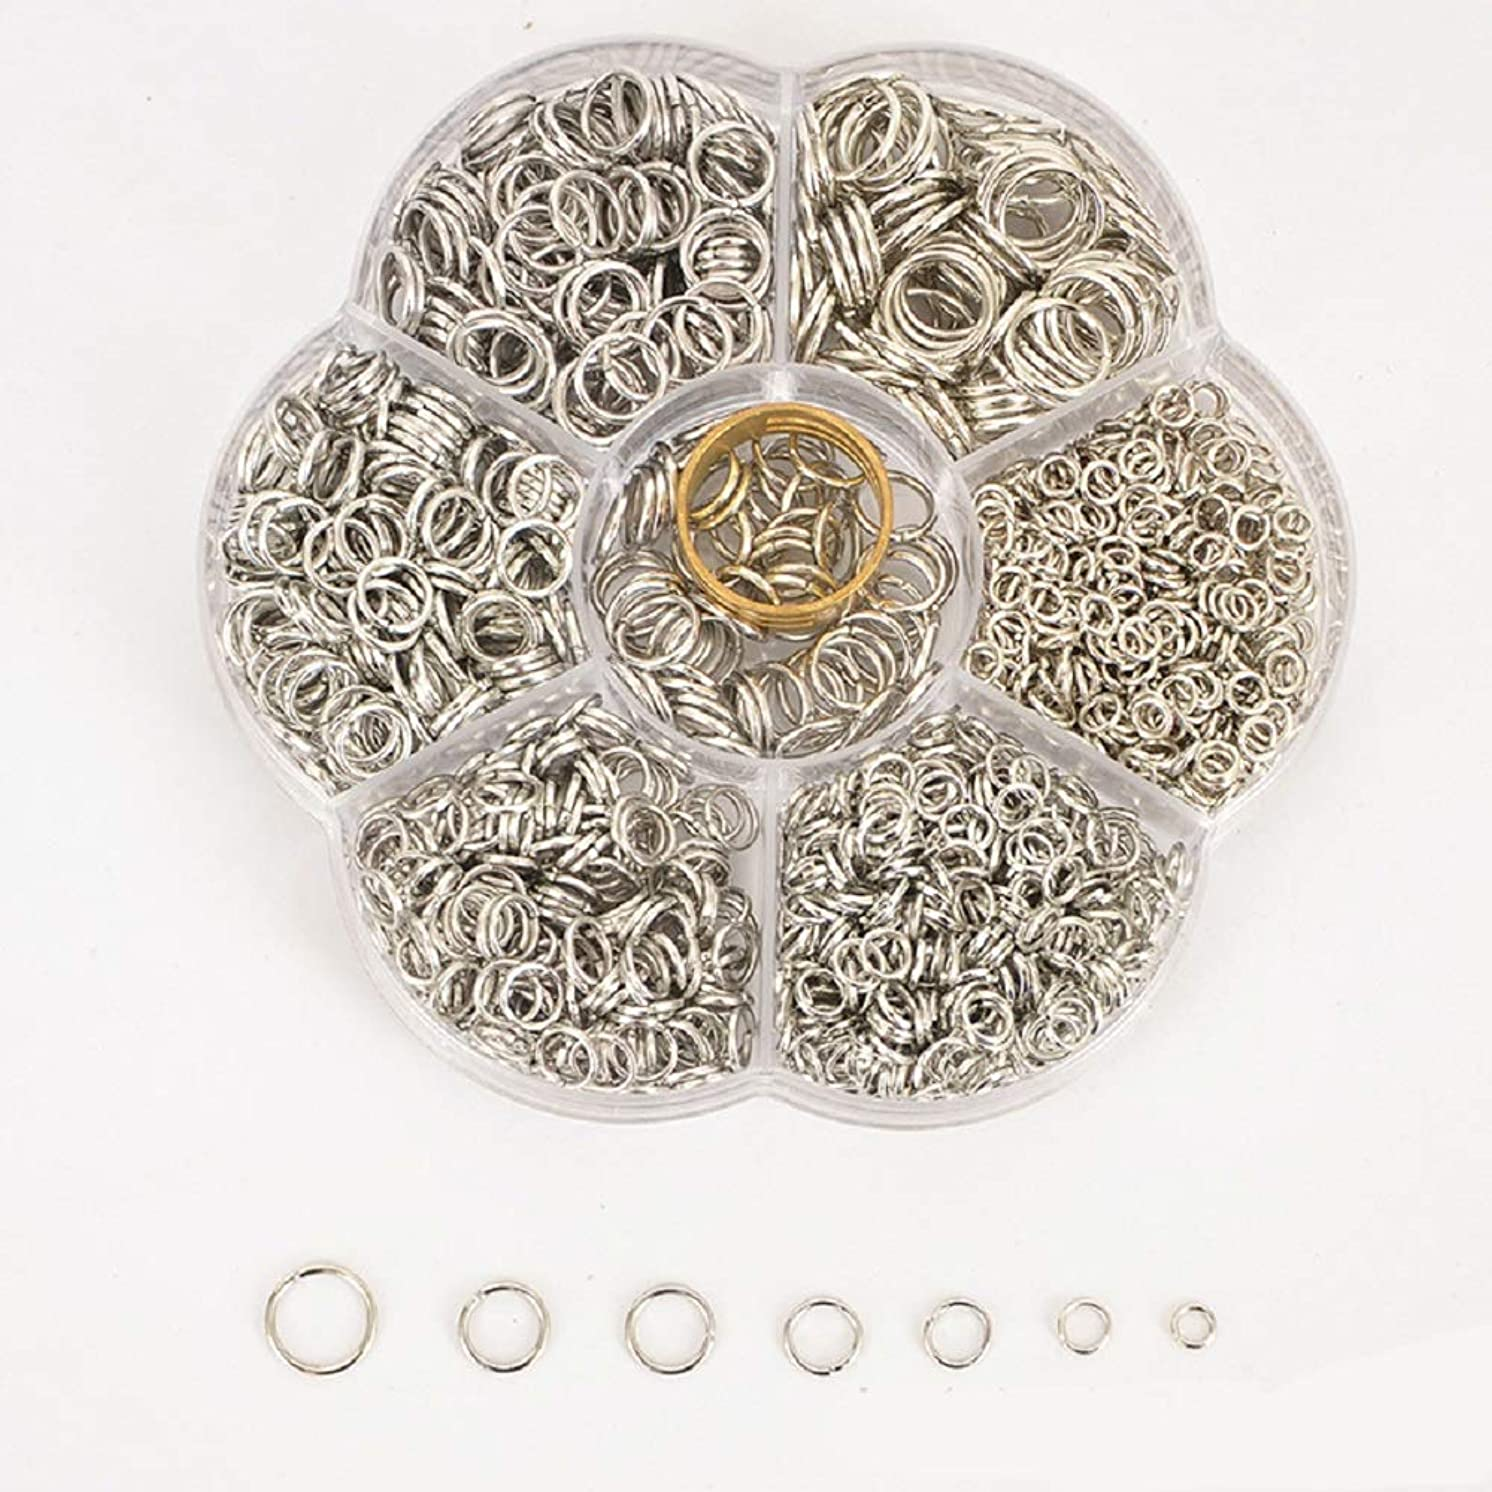 1500 Pcs Open Jump Rings,Silver Jump Rings,with Switch,Earring Hooks,Necklace Making Supplies,Stainless Steel Open Jump Rings Connectors.Silver Jump Rings for Jewelry Making (Silver)